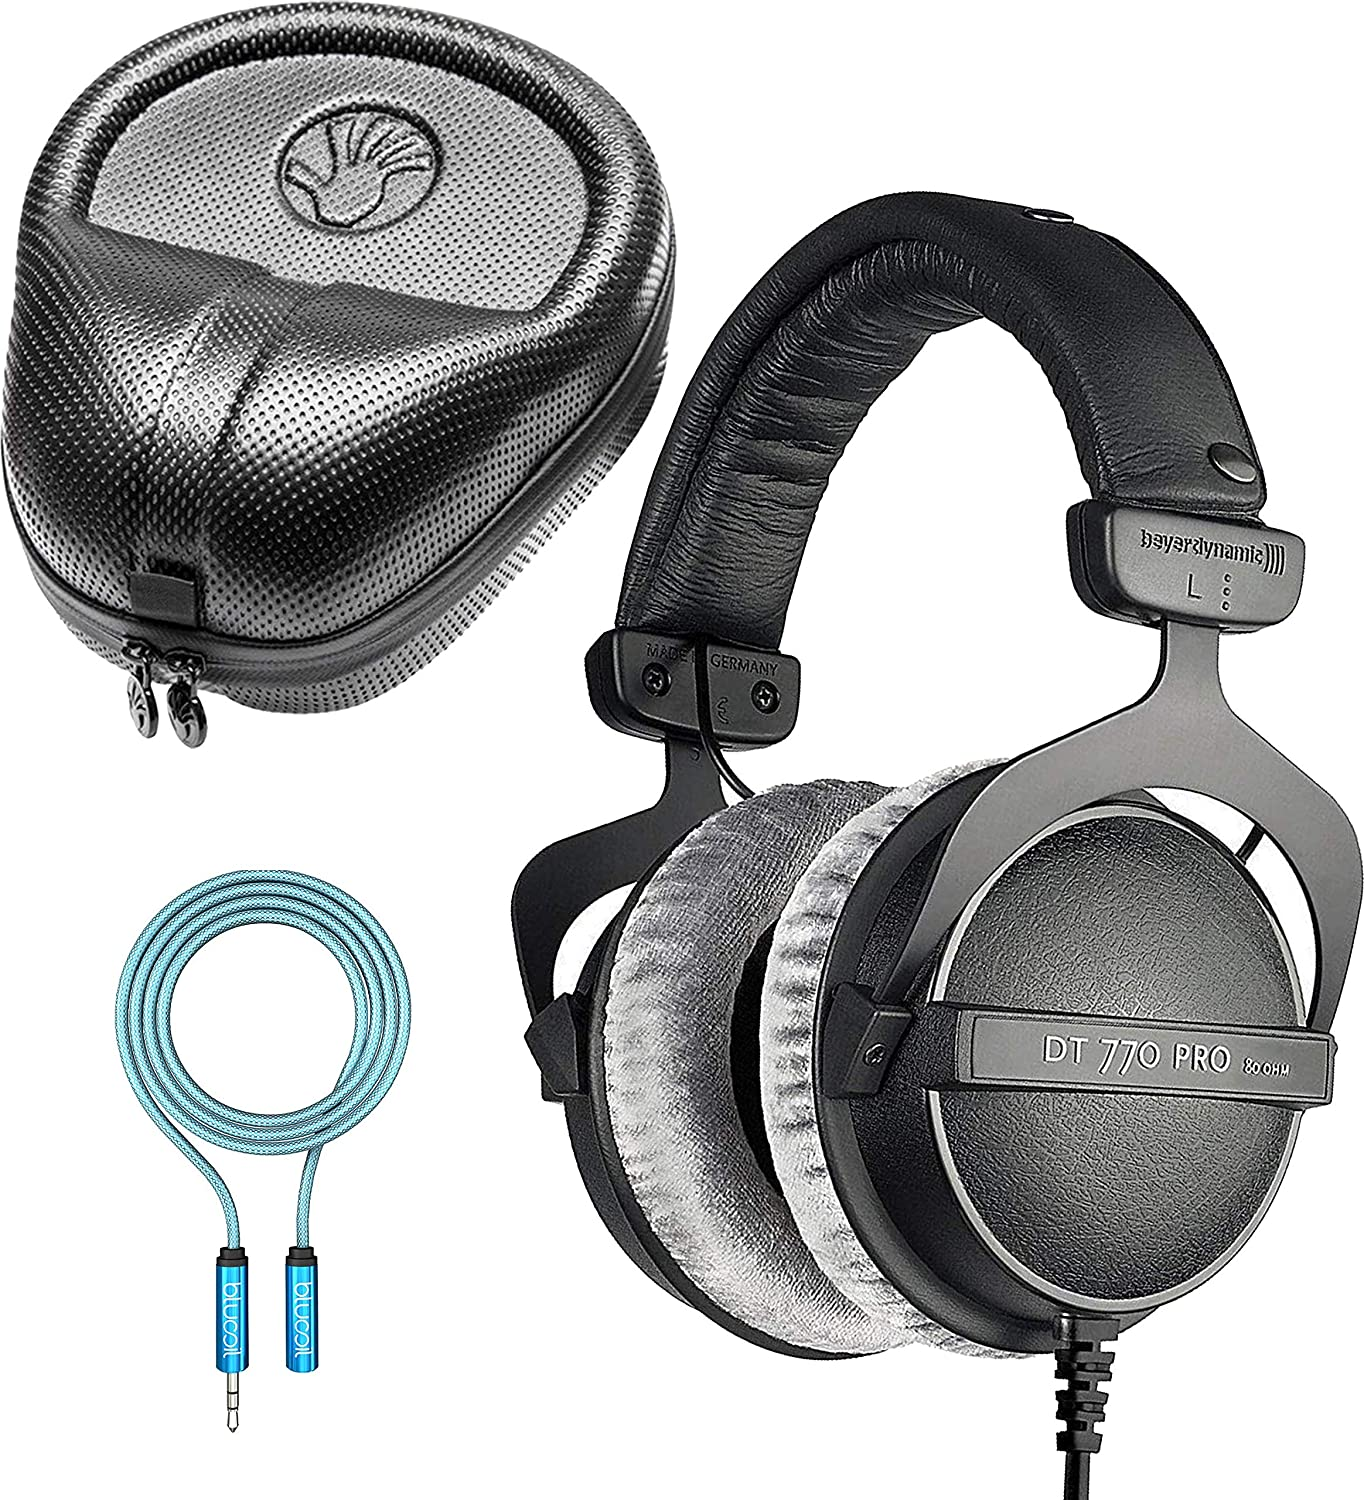 Beyerdynamic DT 770 PRO 32 Ohm Closed Back Headphones Bundle with SLAPPA Hardbody PRO Headphone Case and Blucoil 6-FT Headphone Extension Cable 3.5mm